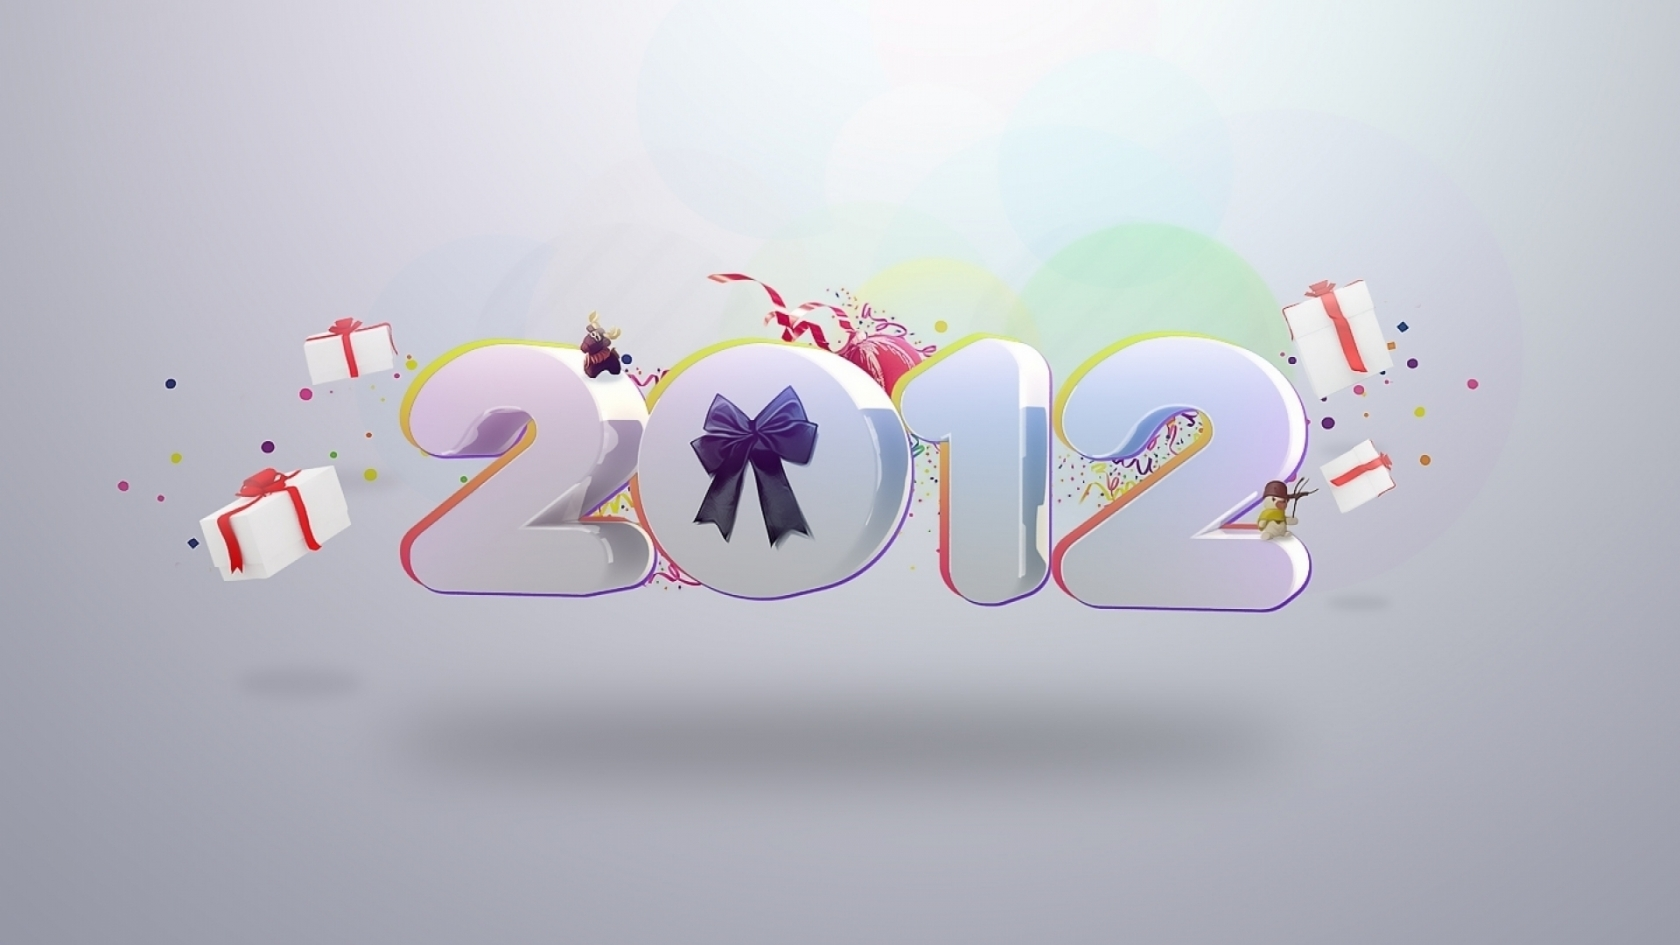 2012 Year Celebration for 1680 x 945 HDTV resolution